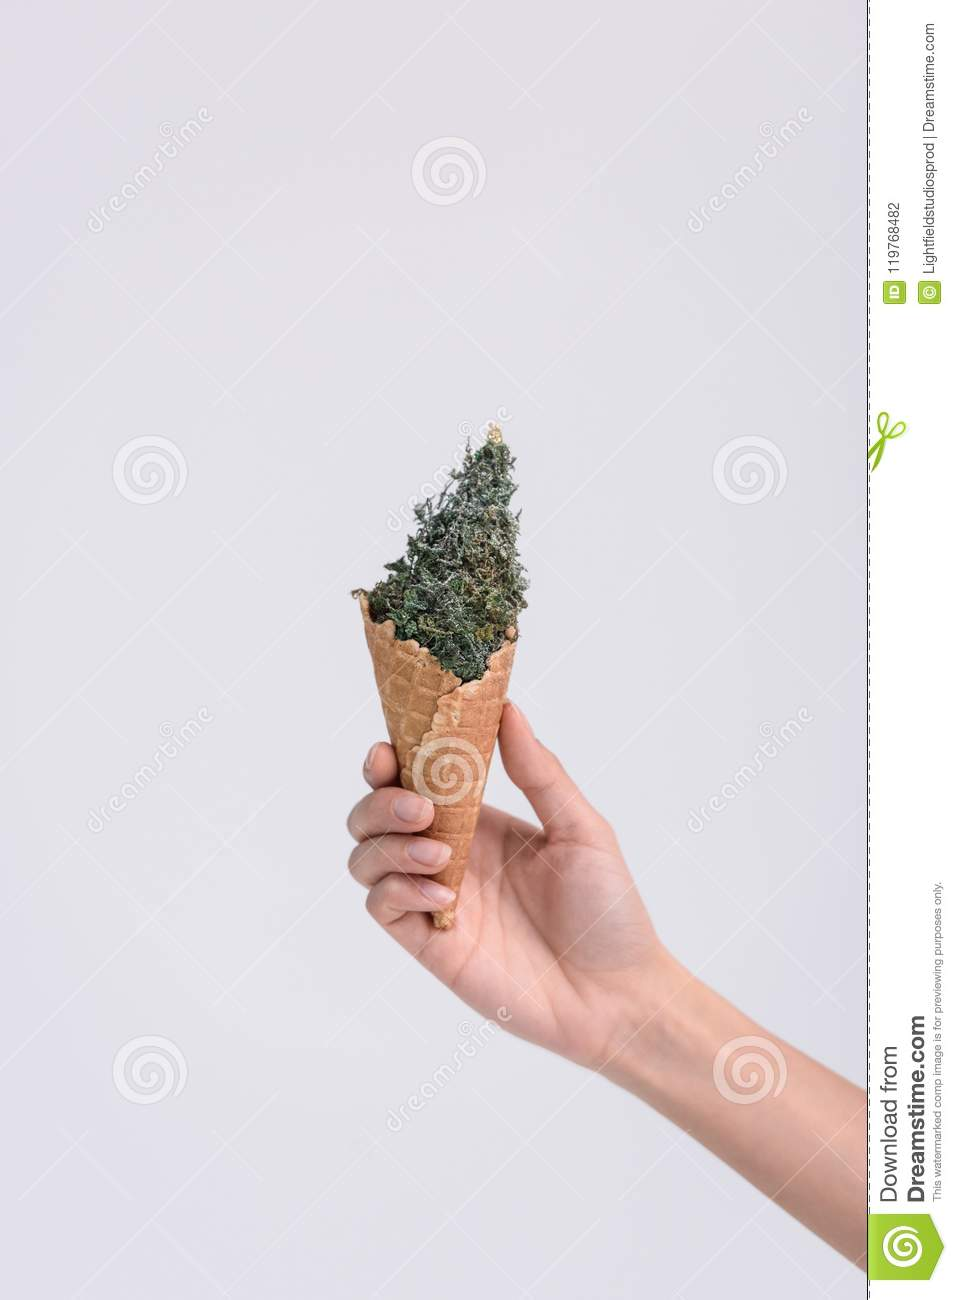 Ice Cream Cone With Christmas Tree Stock Photo - Image of holiday ...